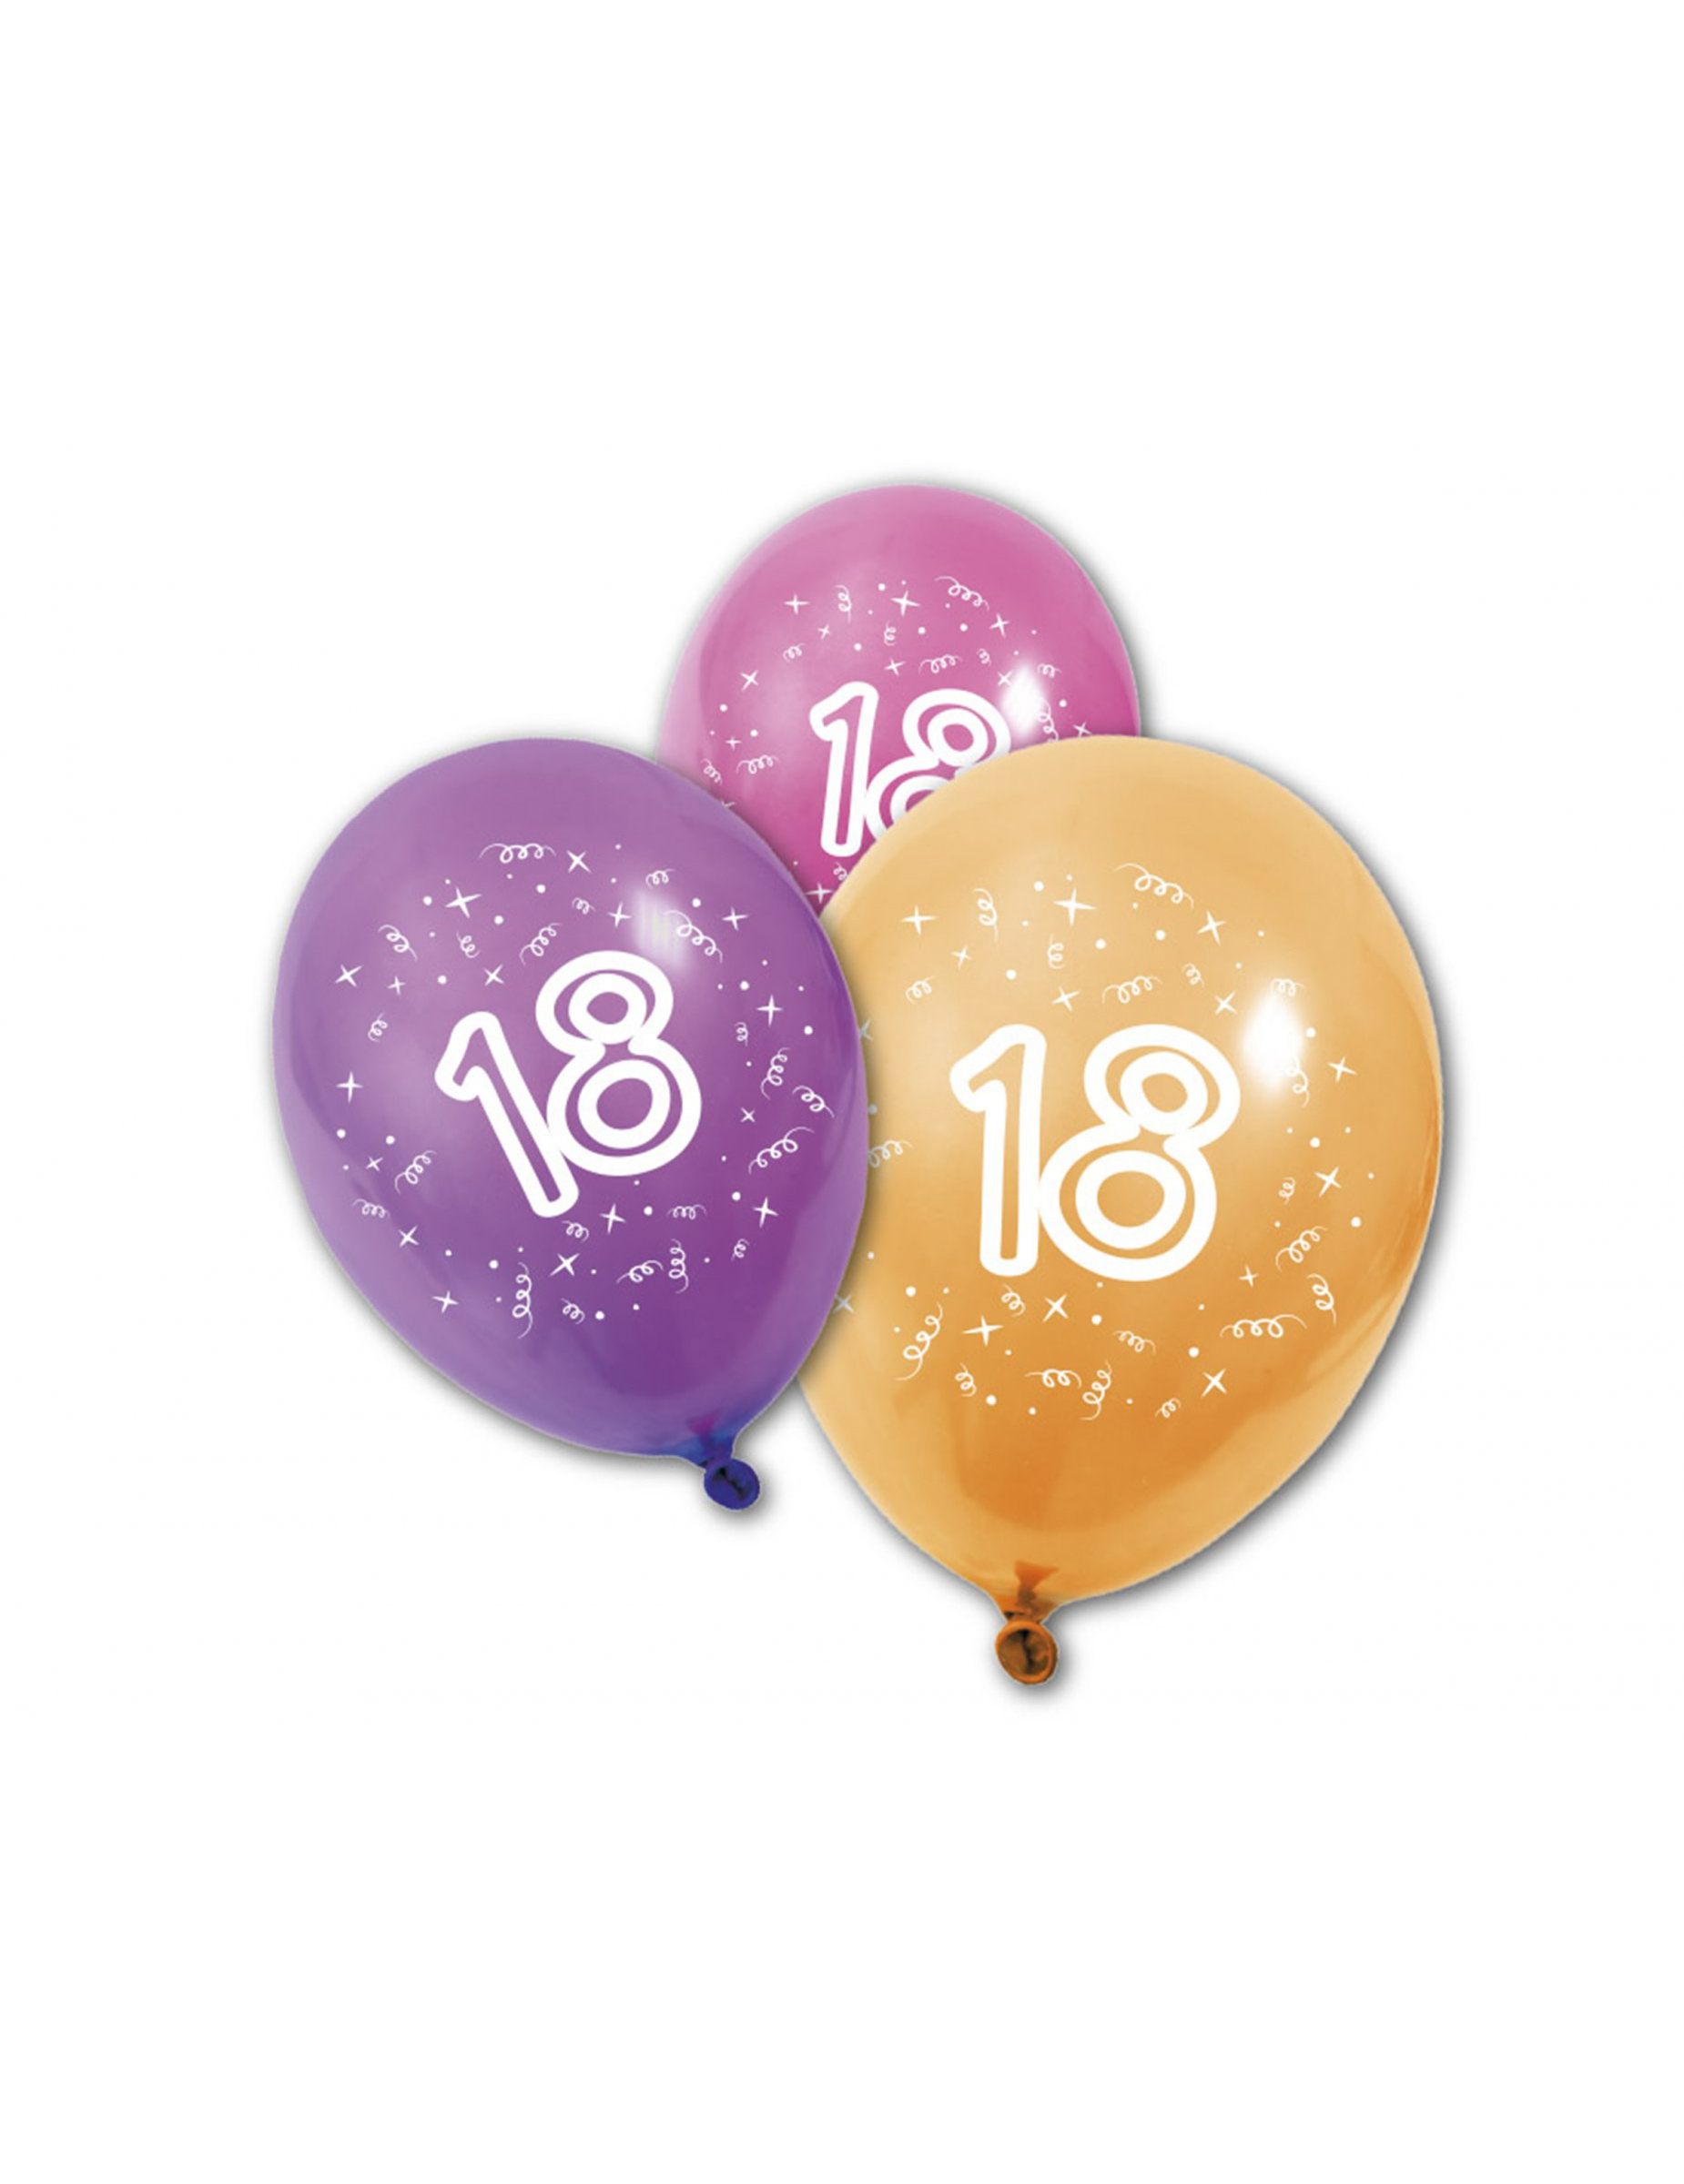 8 ballons en latex anniversaire 18 ans deguise toi achat de decoration animation. Black Bedroom Furniture Sets. Home Design Ideas